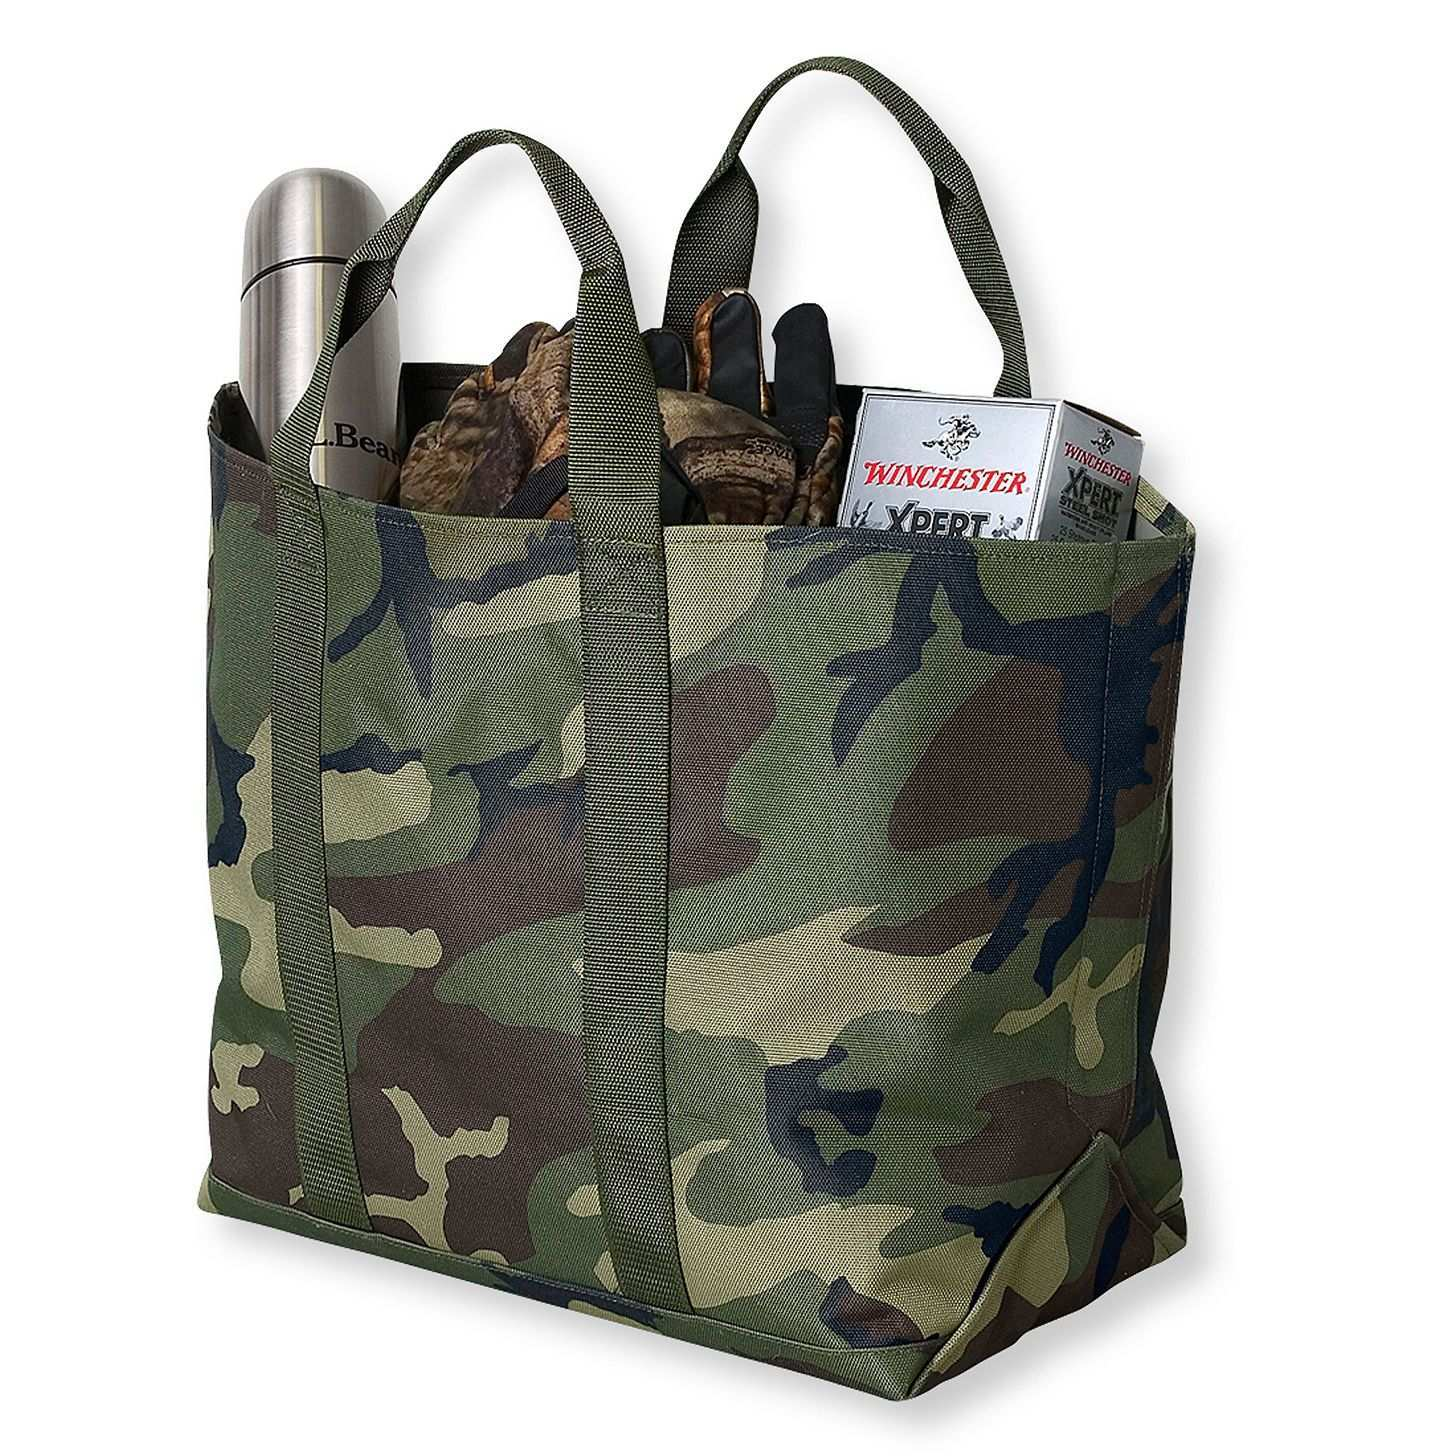 We Can T Camouflage Our Affections For This Cute Couple Camo Bag Tote Purses And Bags